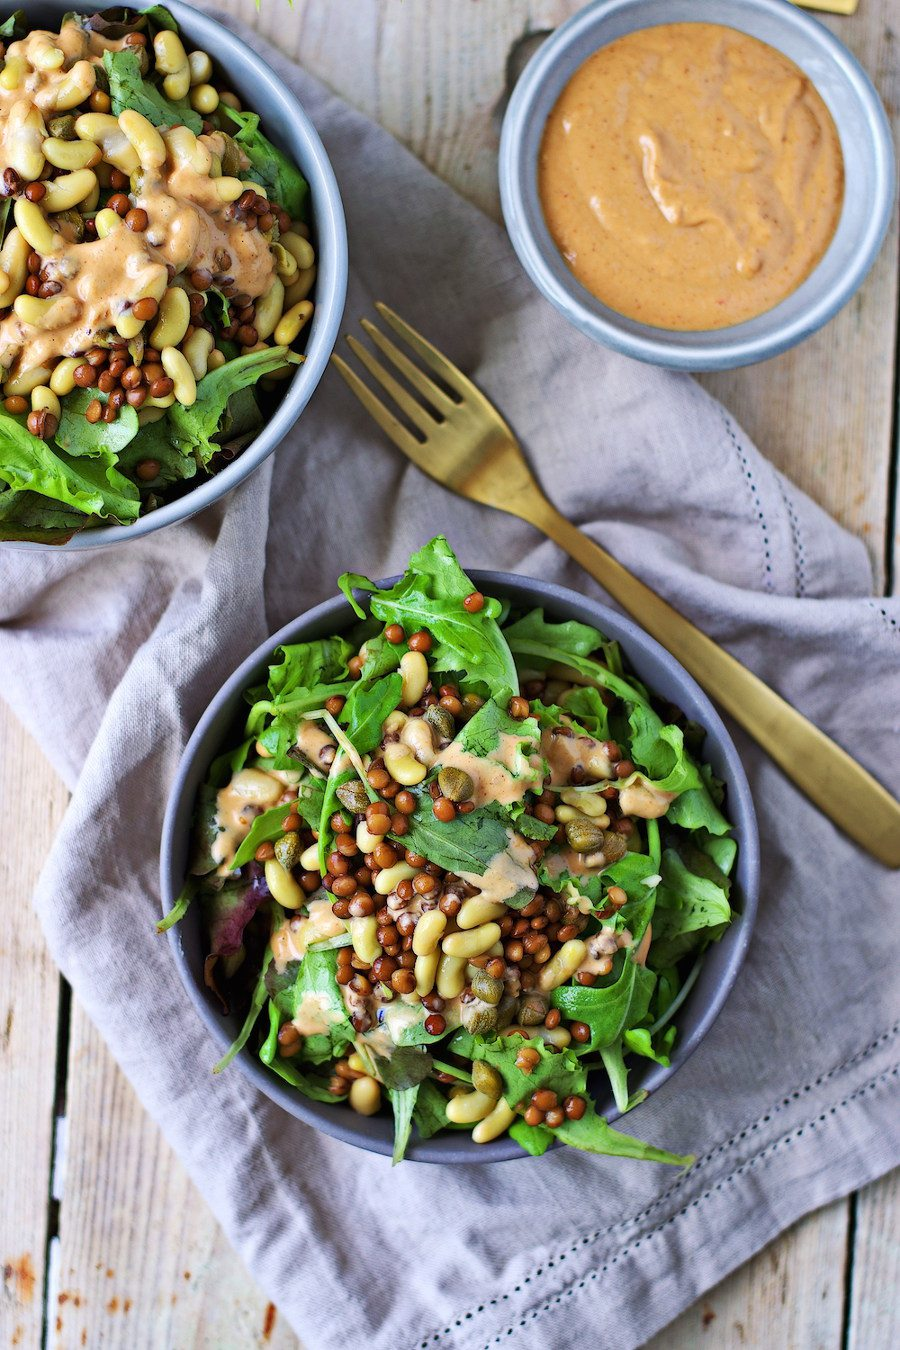 High Protein Salad with Green Kidney Beans and Lentils. Here are 25 delicious vegan salads that will fill you up andhave a healthy source of protein. Show your friends that not 'all vegans eat is rabbit food' with these unique and delicious twists on salads #vegan